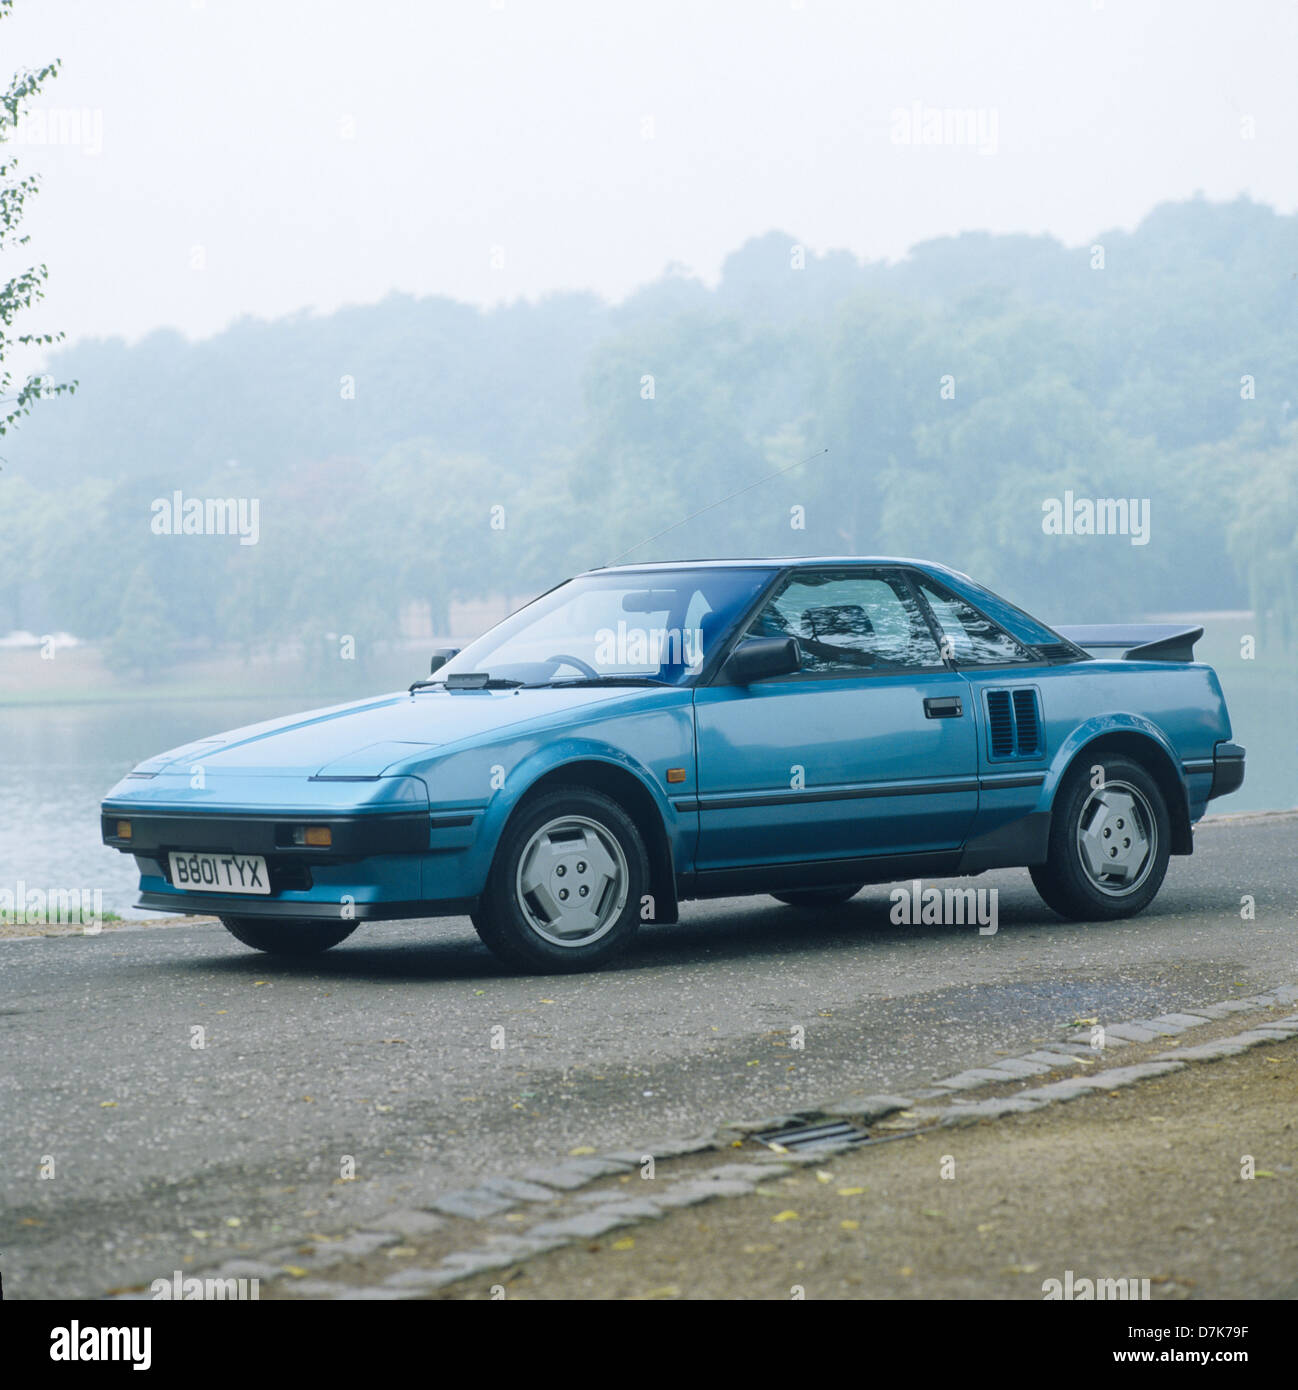 hight resolution of toyota mr2 mid engined sports car 1984 model year beige metallic stock photo 56356539 alamy